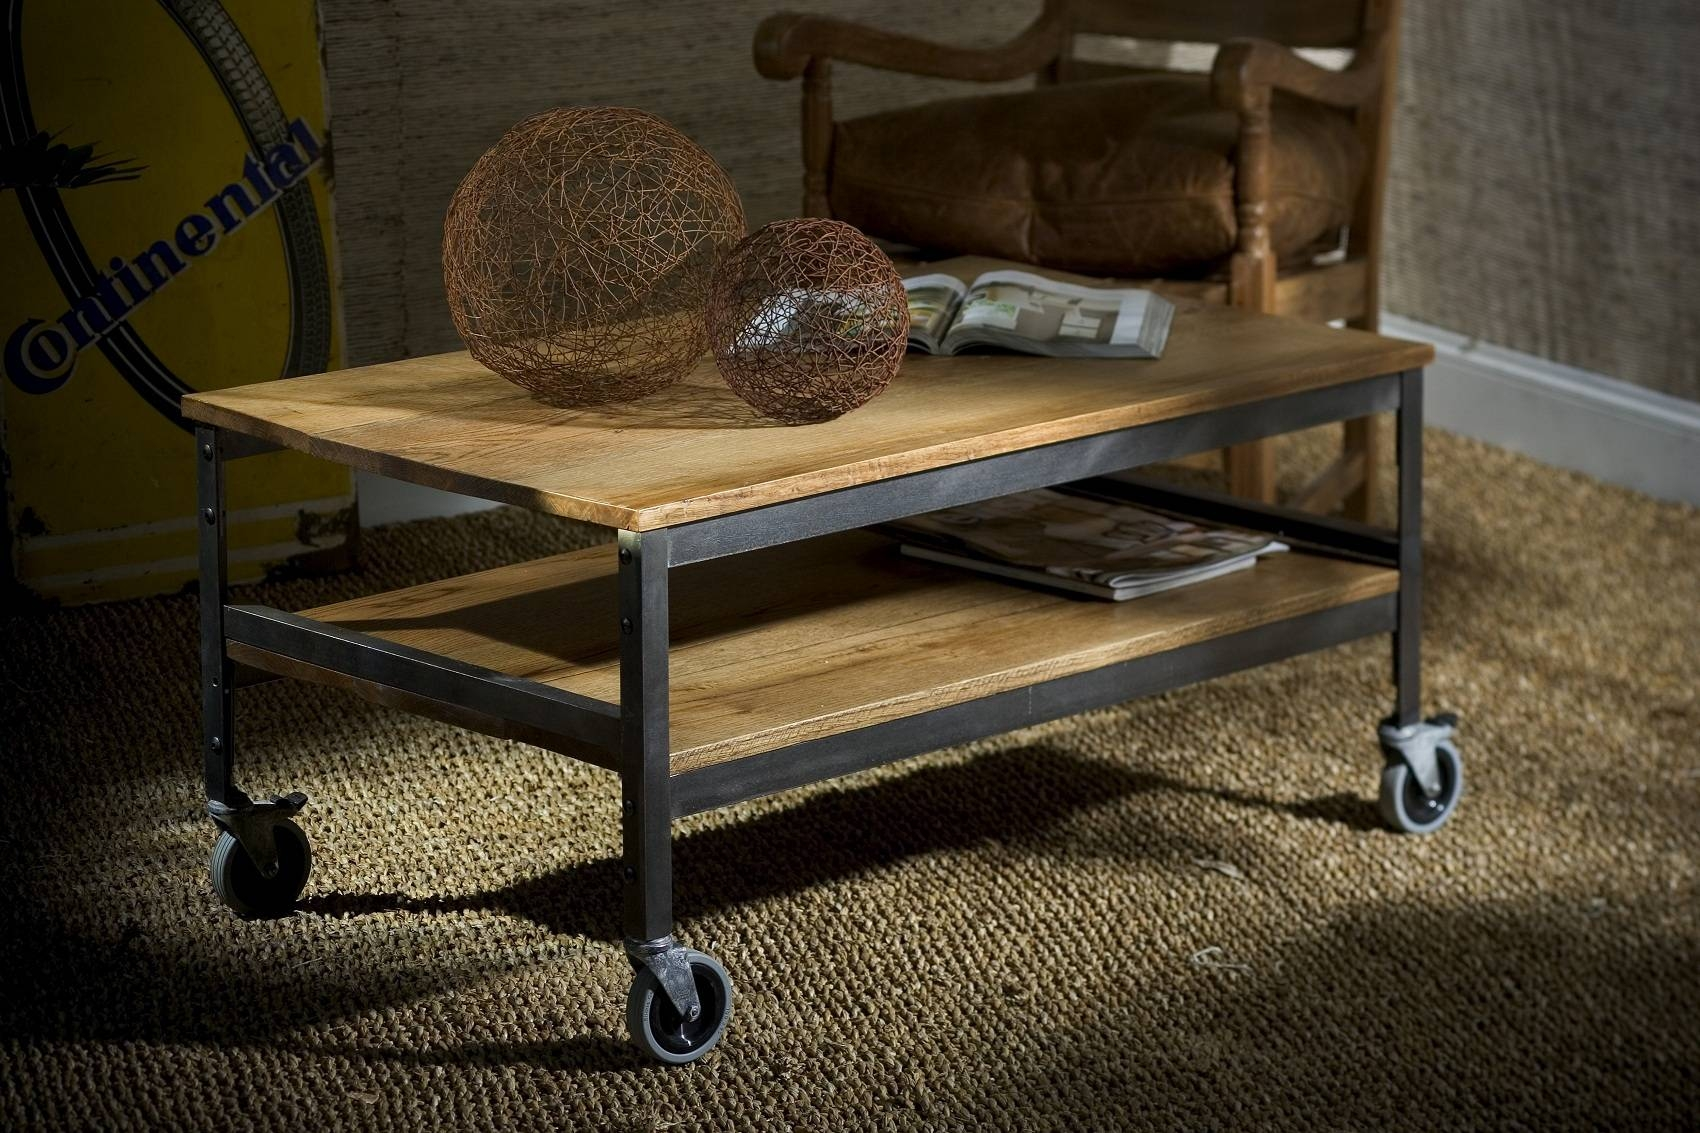 Farmhouse Style Coffee Table Throughout Wooden Garden Coffee Tables (Image 9 of 30)